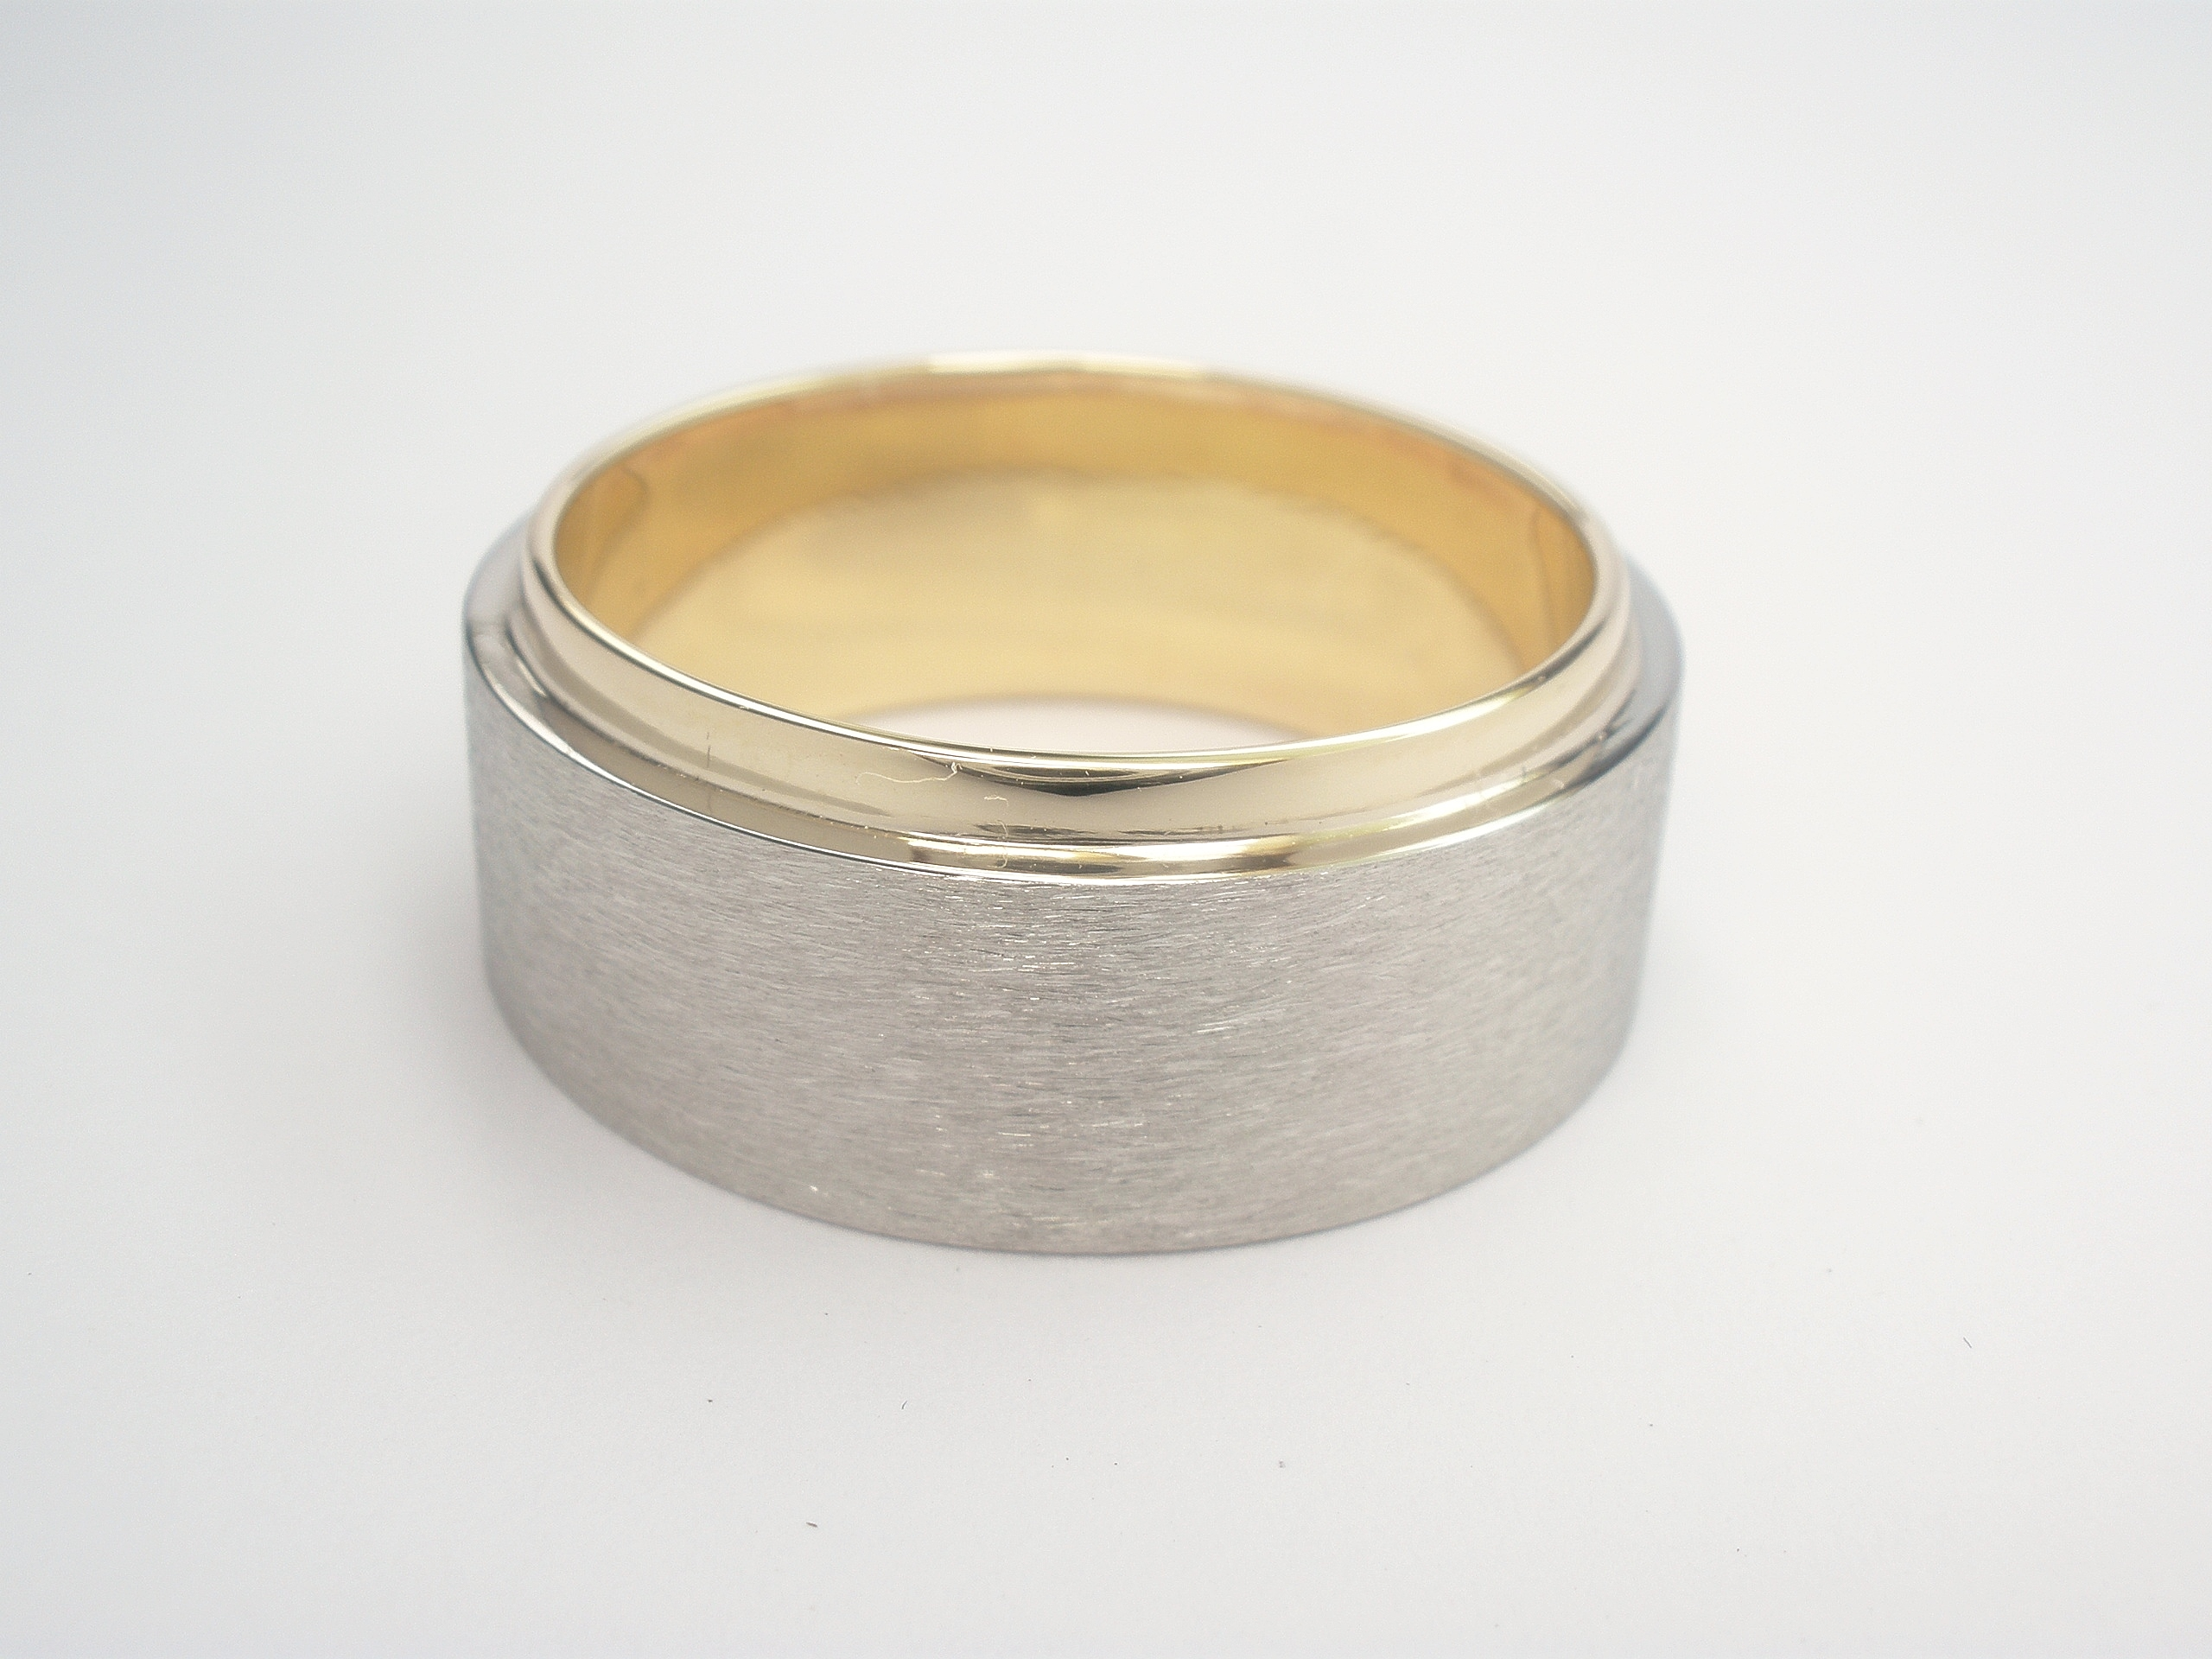 9ct. yellow gold gents wedding ring with a brushed finish palladium ring overlaid across 80% of the 9ct. yellow gold ring.